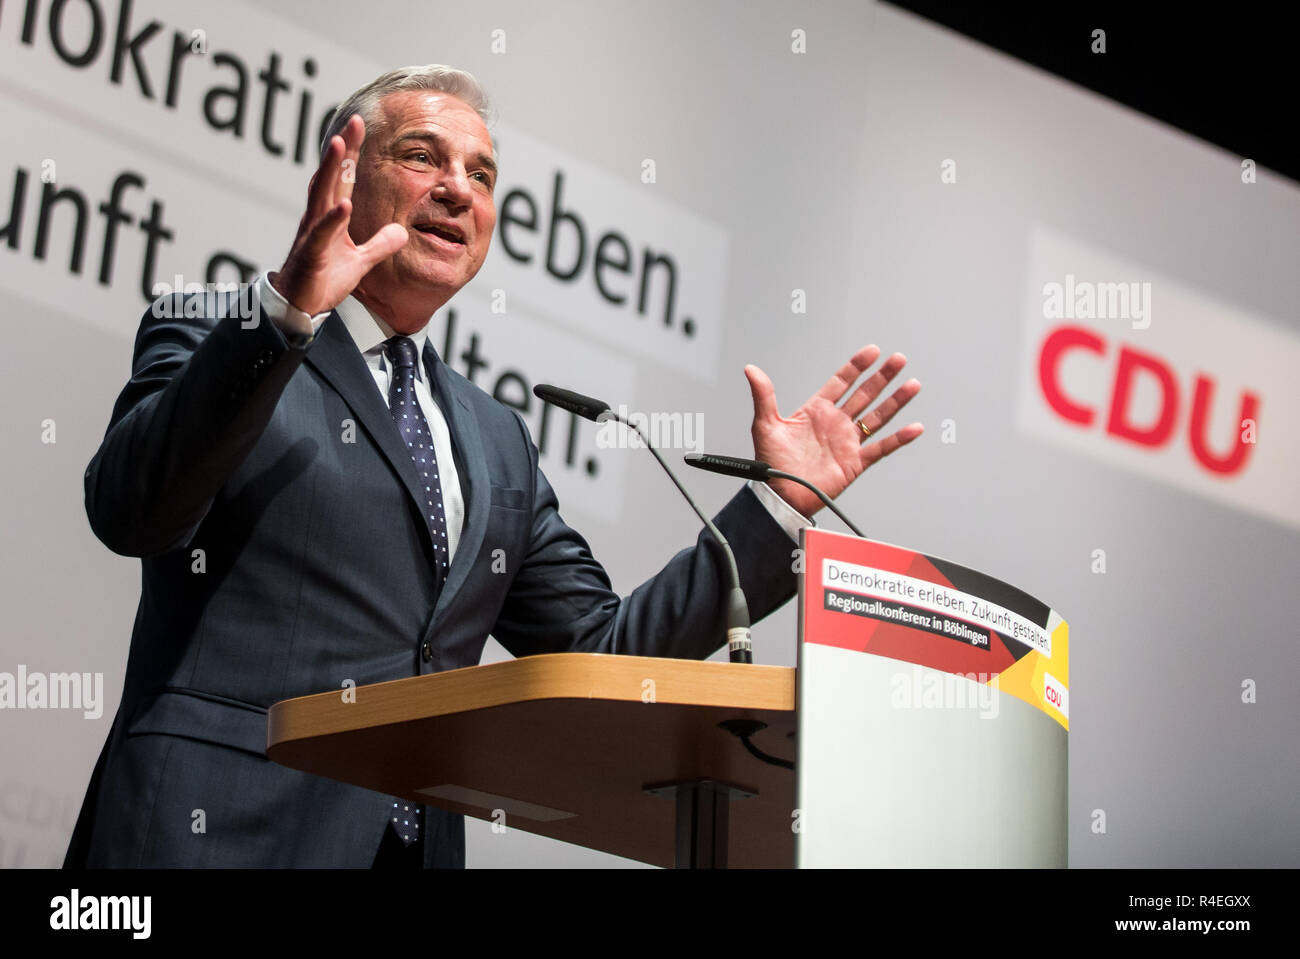 27 November 2018, Baden-Wuerttemberg, Böblingen: Thomas Strobl (CDU), Baden-Württemberg's Interior Minister, speaks to party members at the CDU regional conference. Photo: Christoph Schmidt/dpa - Stock Image